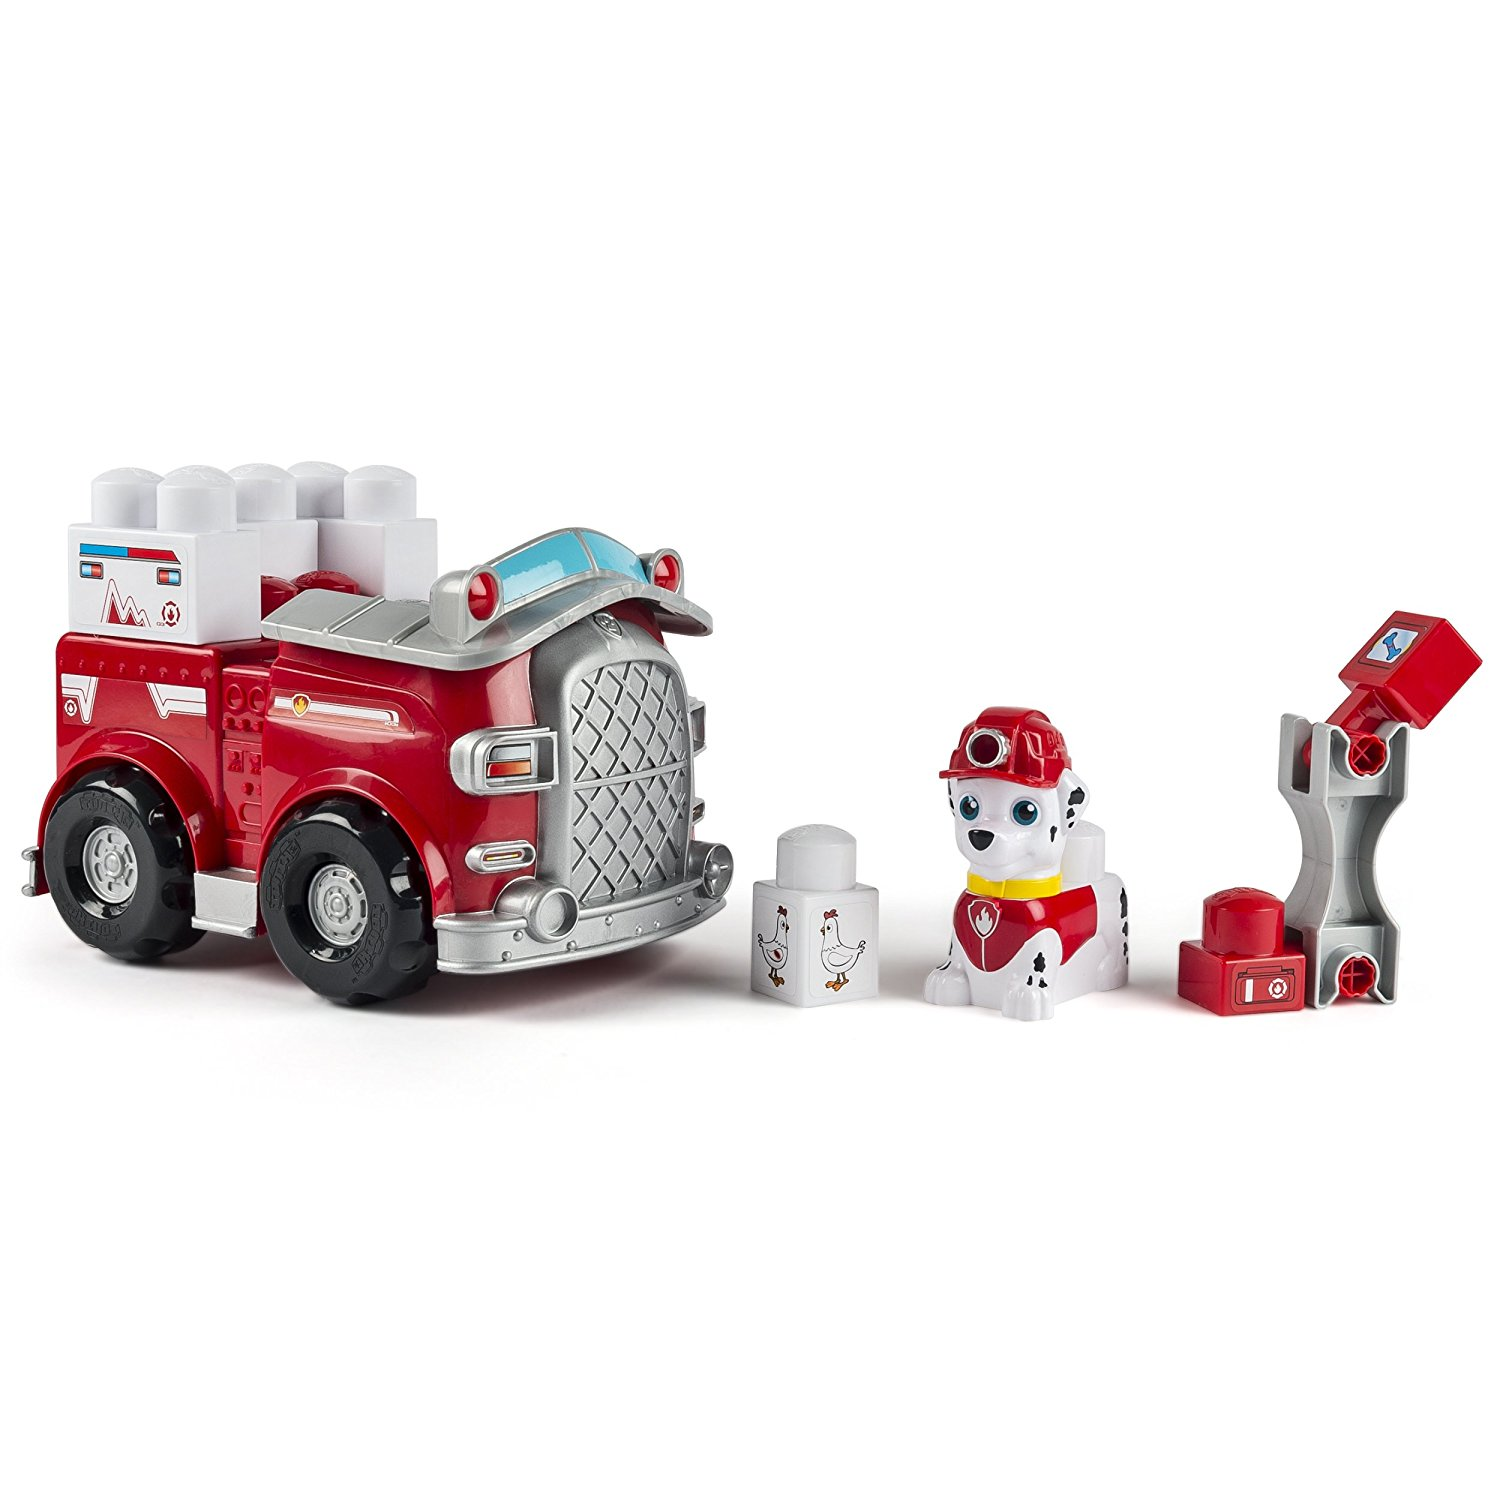 IONIX Jr. , Rescue Marshall Block Set, Revolutionize construction play with Ionix Jr. Paw Patrol Rescue... by